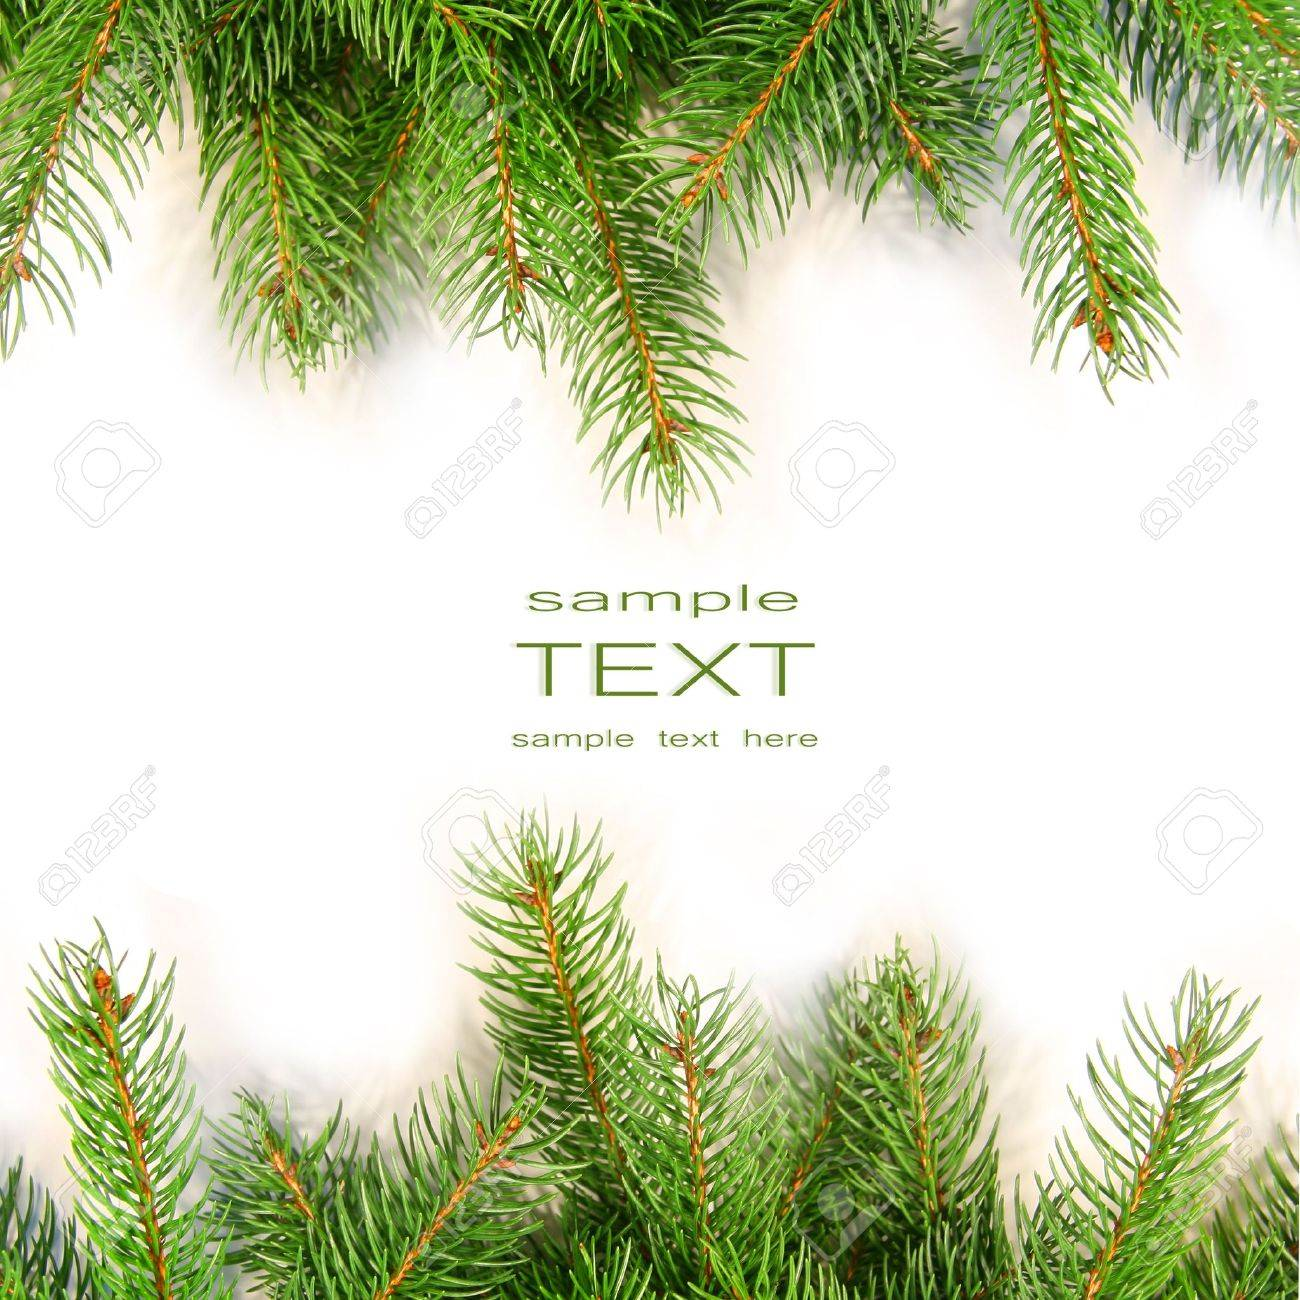 Pine branches isolated on white background Stock Photo - 3733846